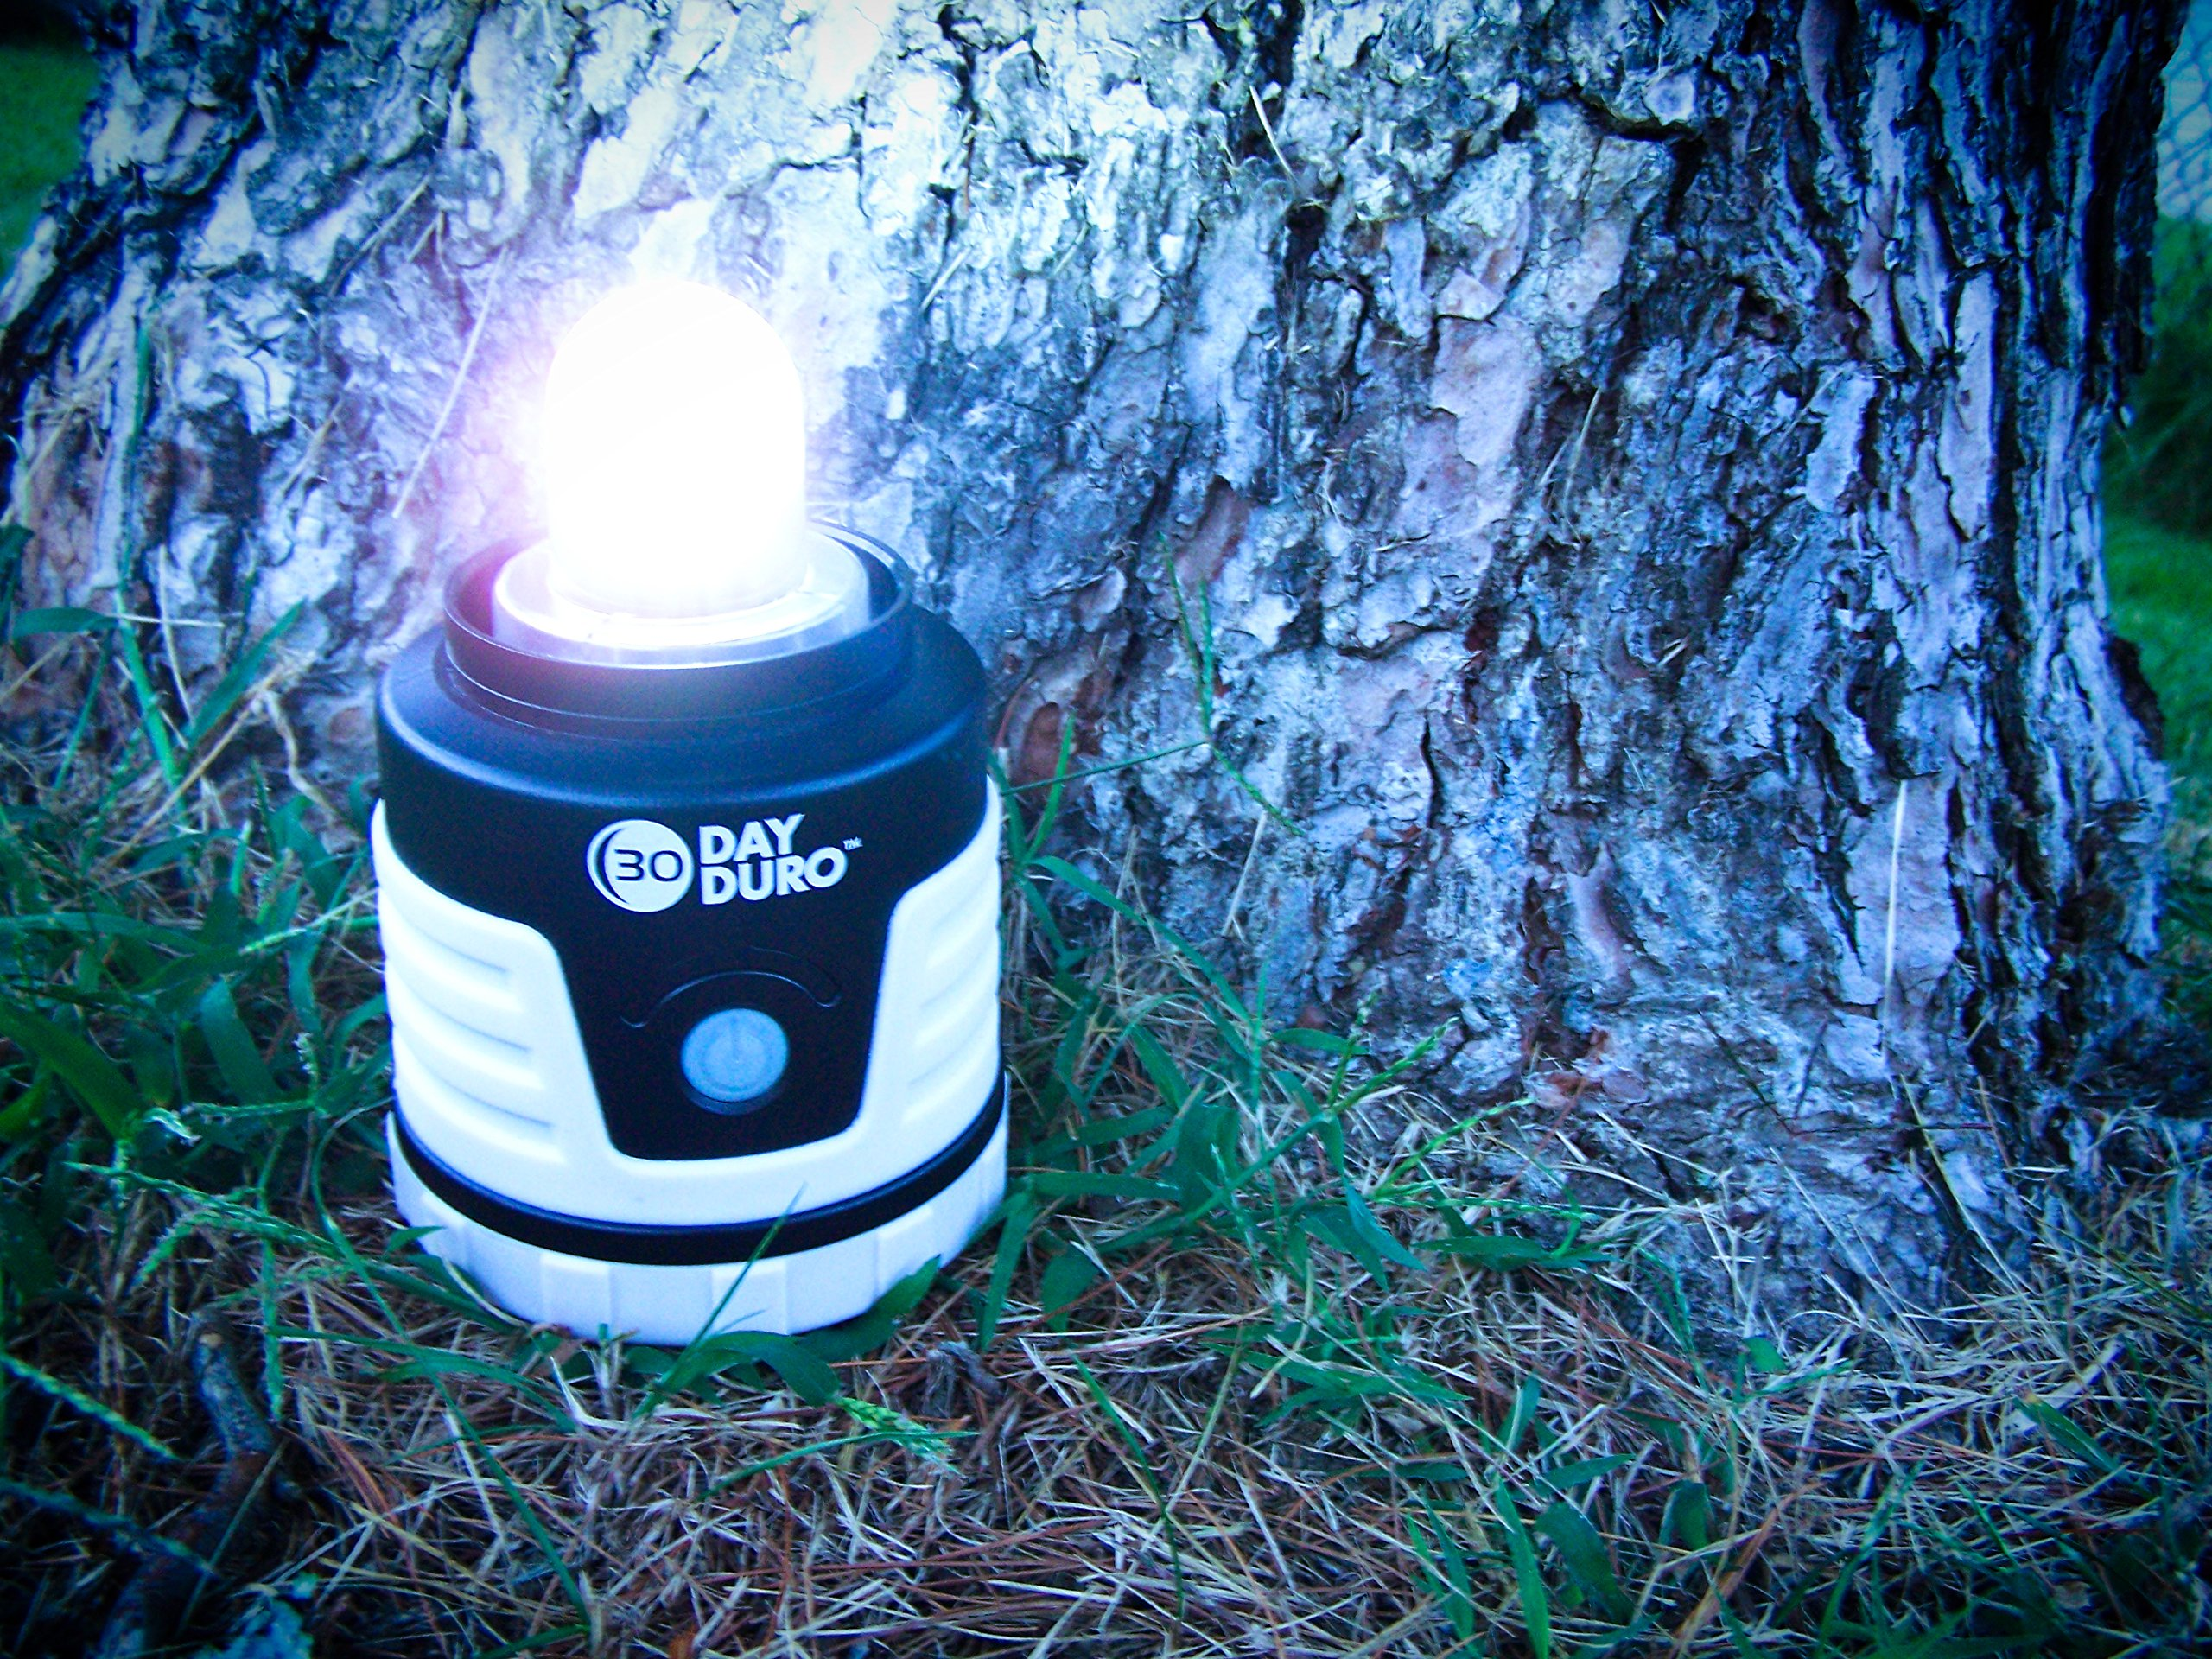 UST 30-DAY Duro LED Portable 700 Lumen Lantern with Lifetime LED Bulbs and Hook for Camping, Hiking, Emergency and Outdoor Survival by UST